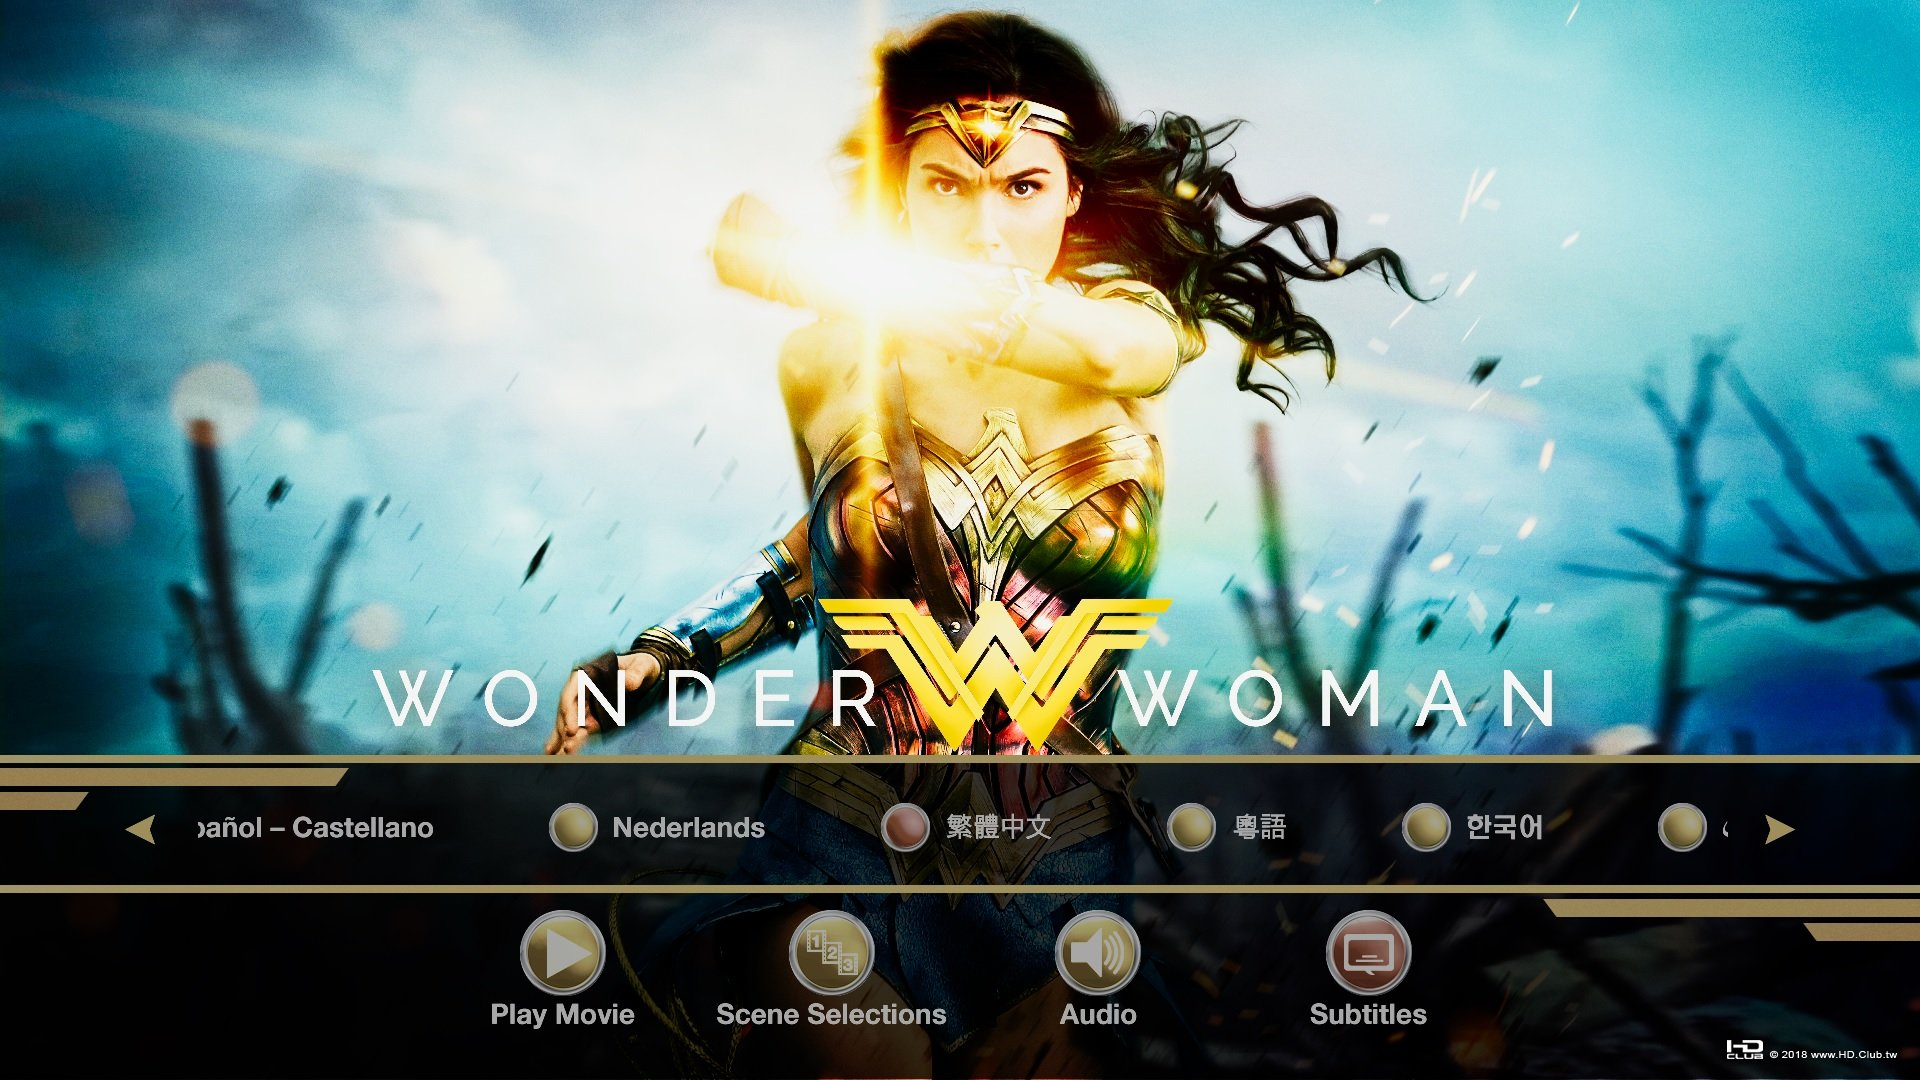 Wonder_Woman_4K-UHD_2017_Menu.jpg